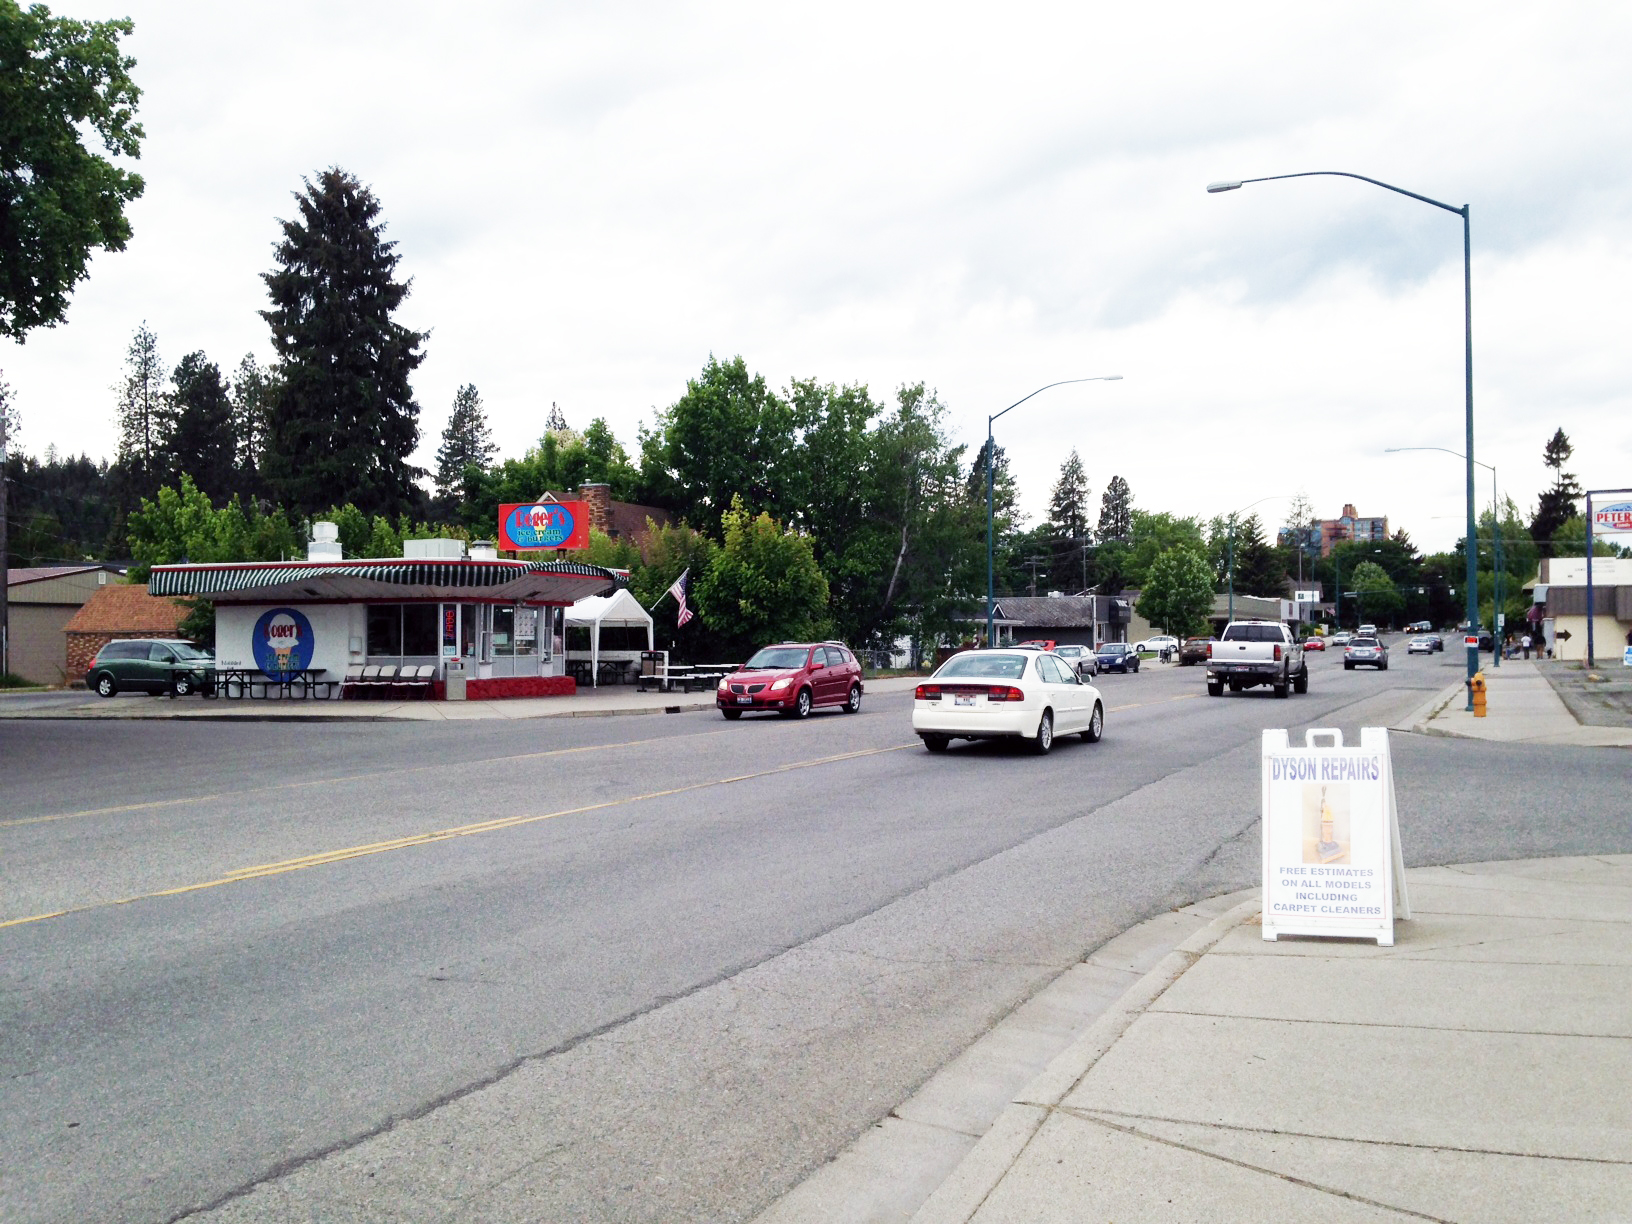 Photo of the intersection of Sherman & 13th looking west